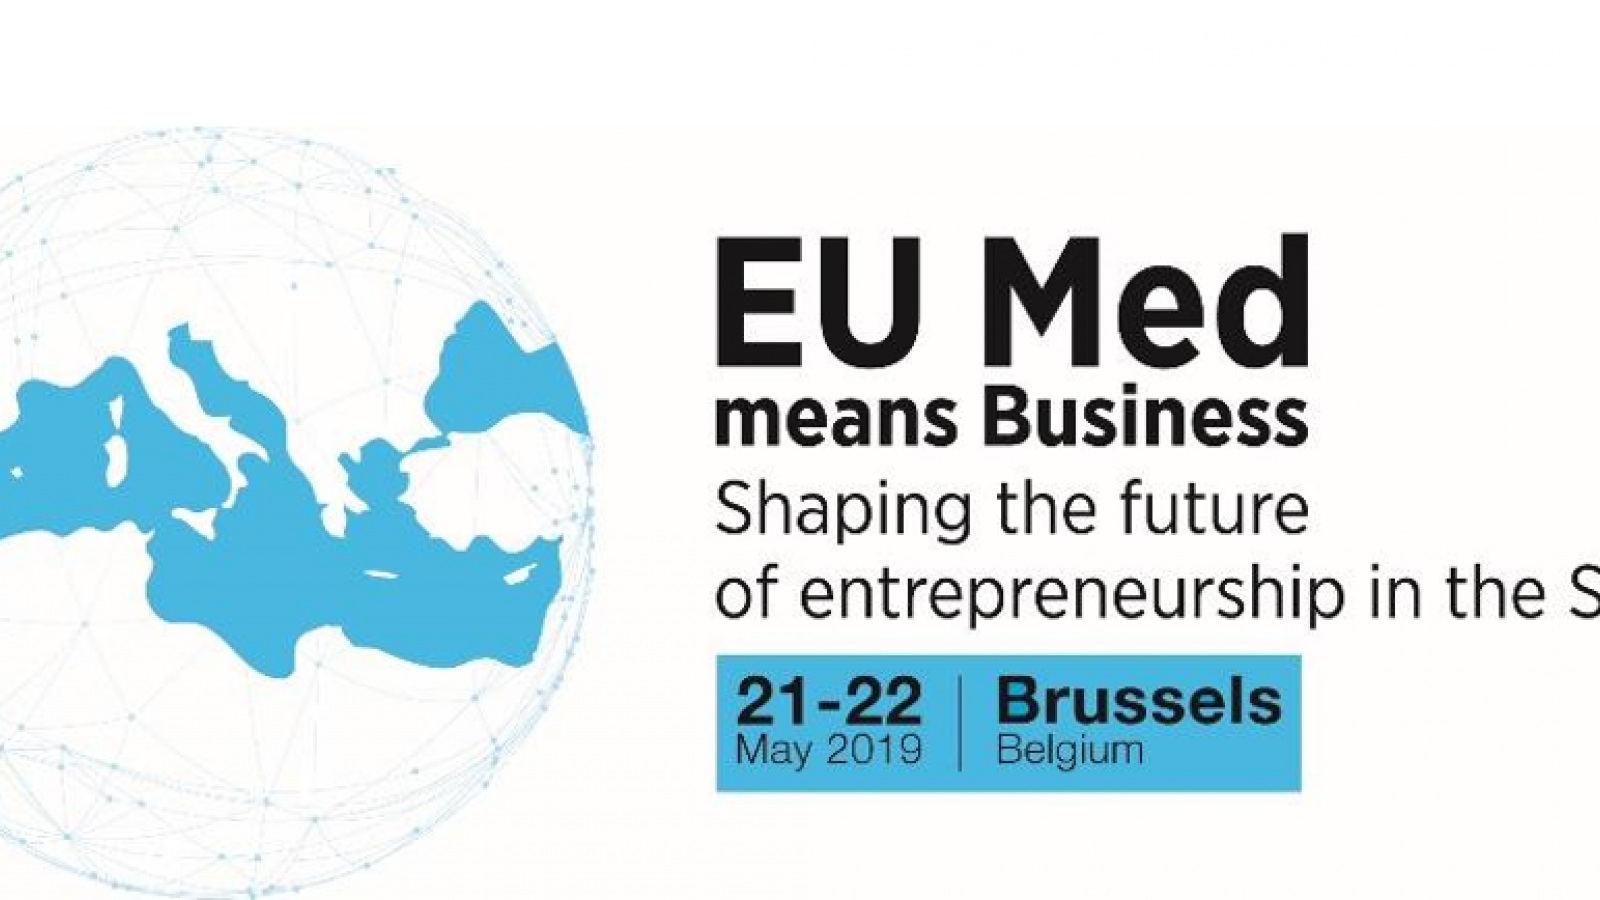 The EU Med means business